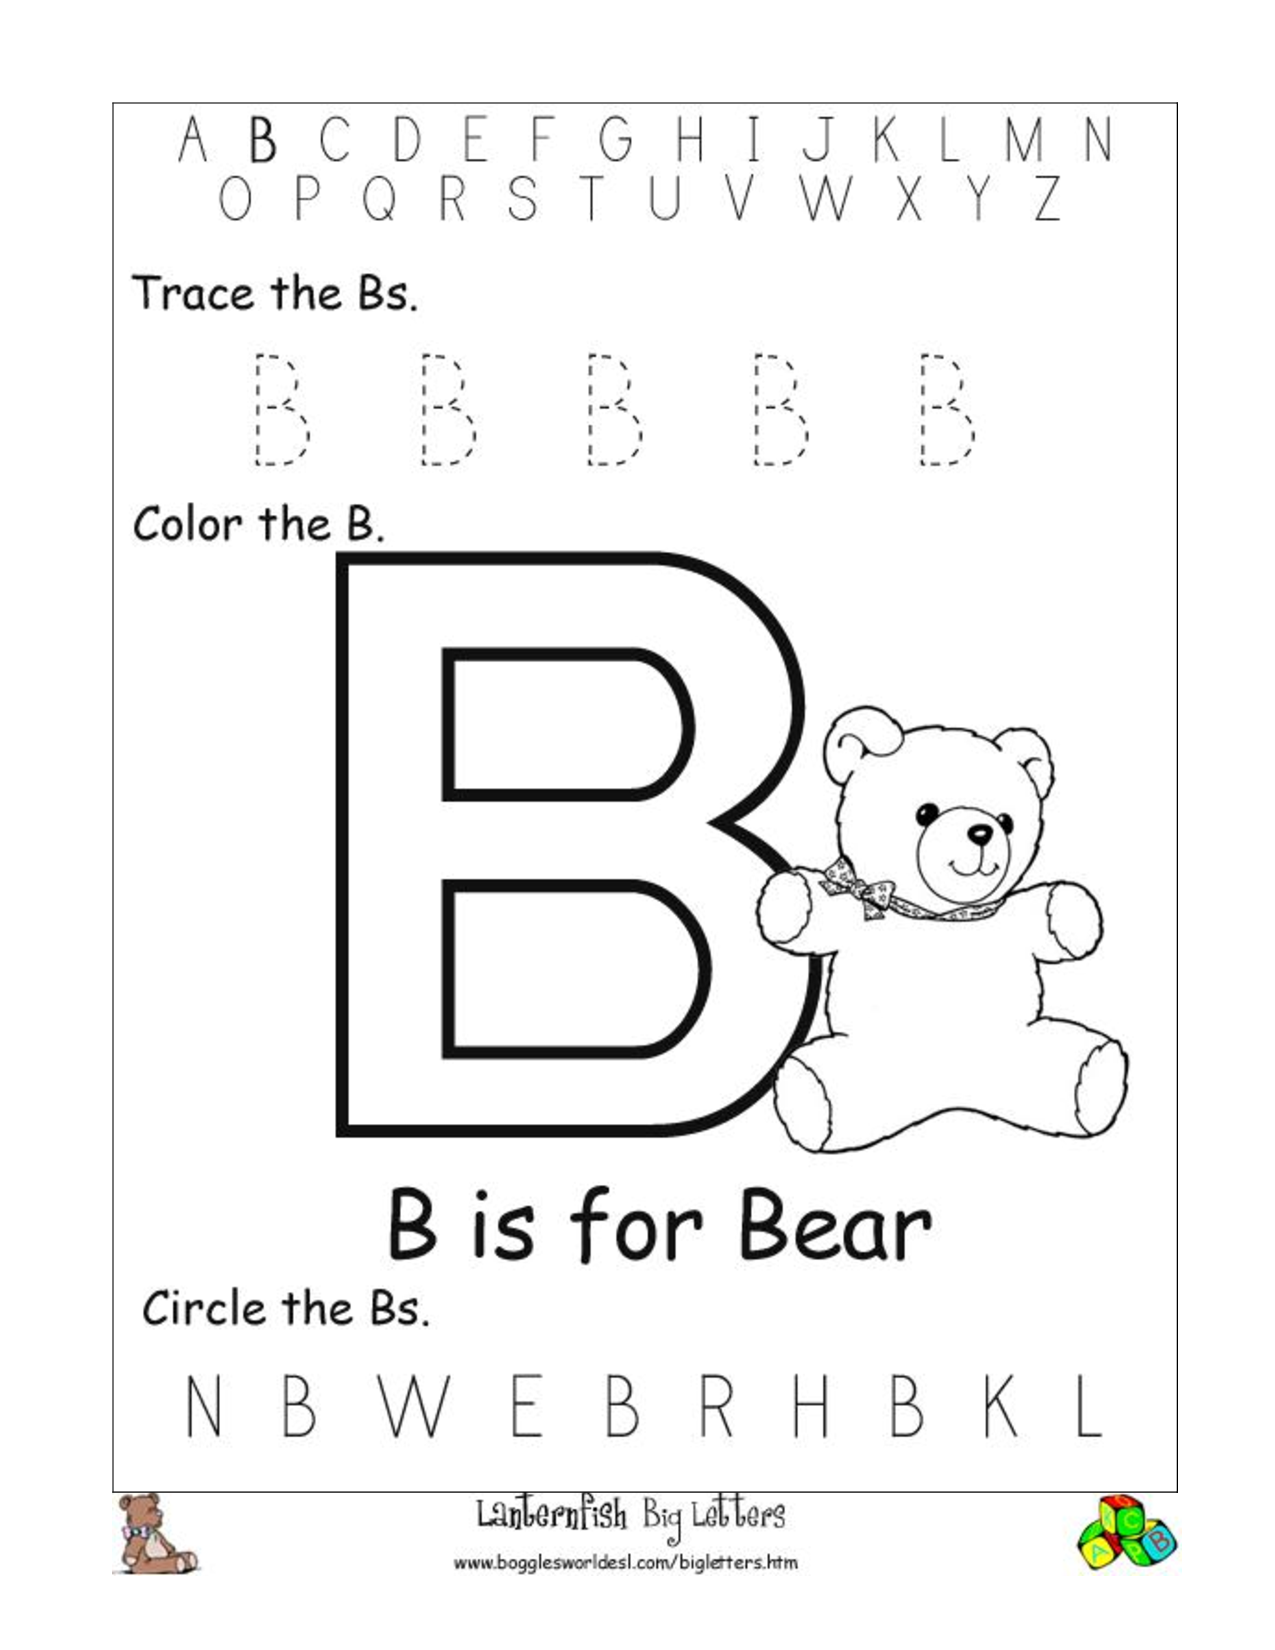 Printables Letter B Worksheets letter b worksheets hd wallpapers download free alphabet recognition tracing car pictures